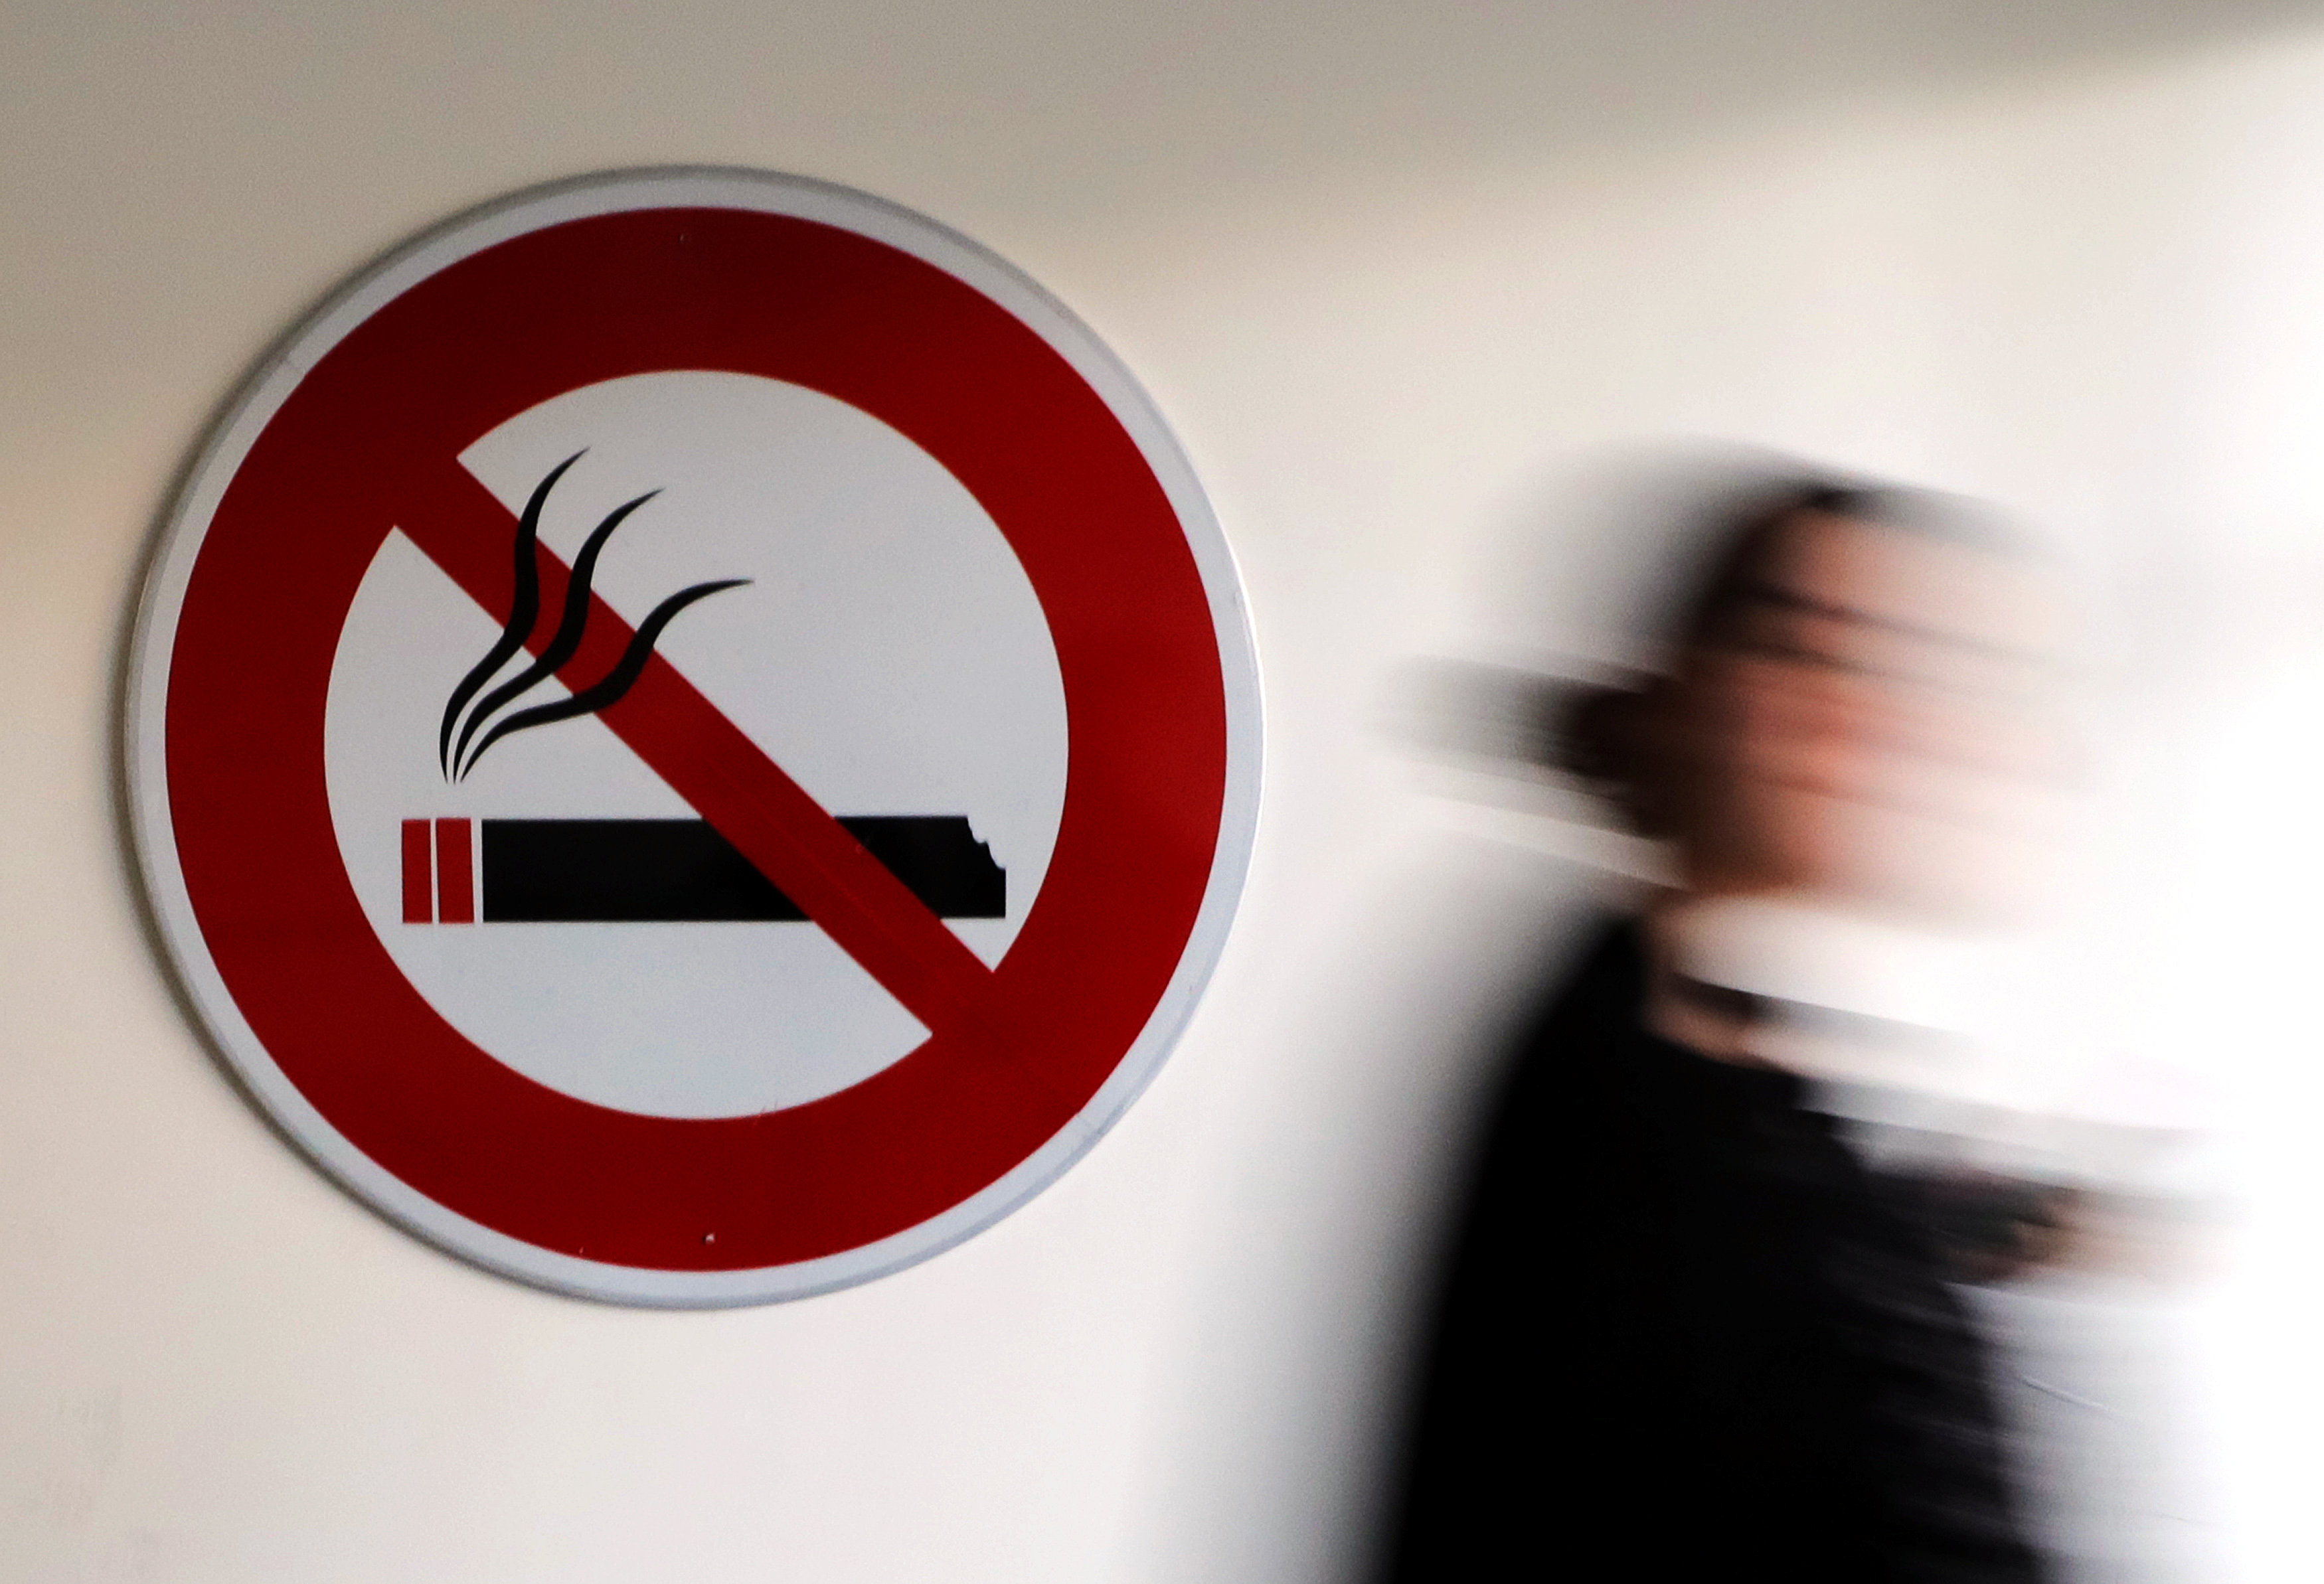 Health director-general Noor Hisham Abdullah said all food premises have been gazetted as no-smoking zones, effective from midnight tonight. — Reuters pic